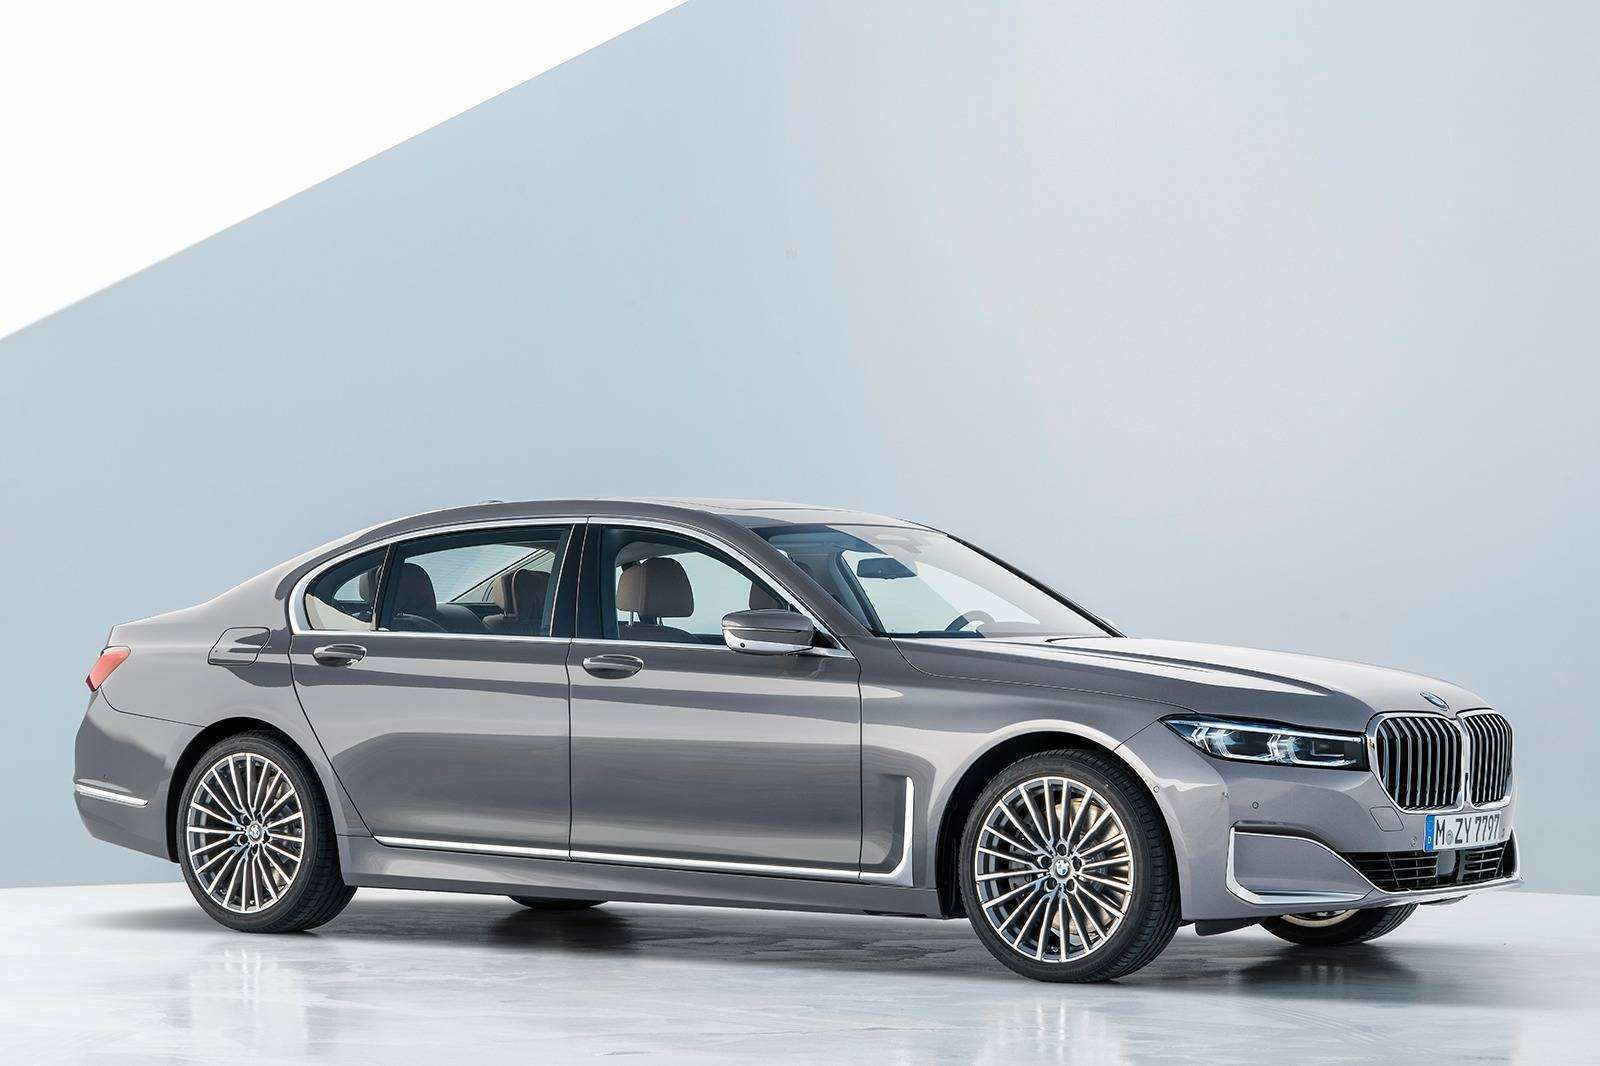 43 All New BMW En 2020 Redesign And Concept